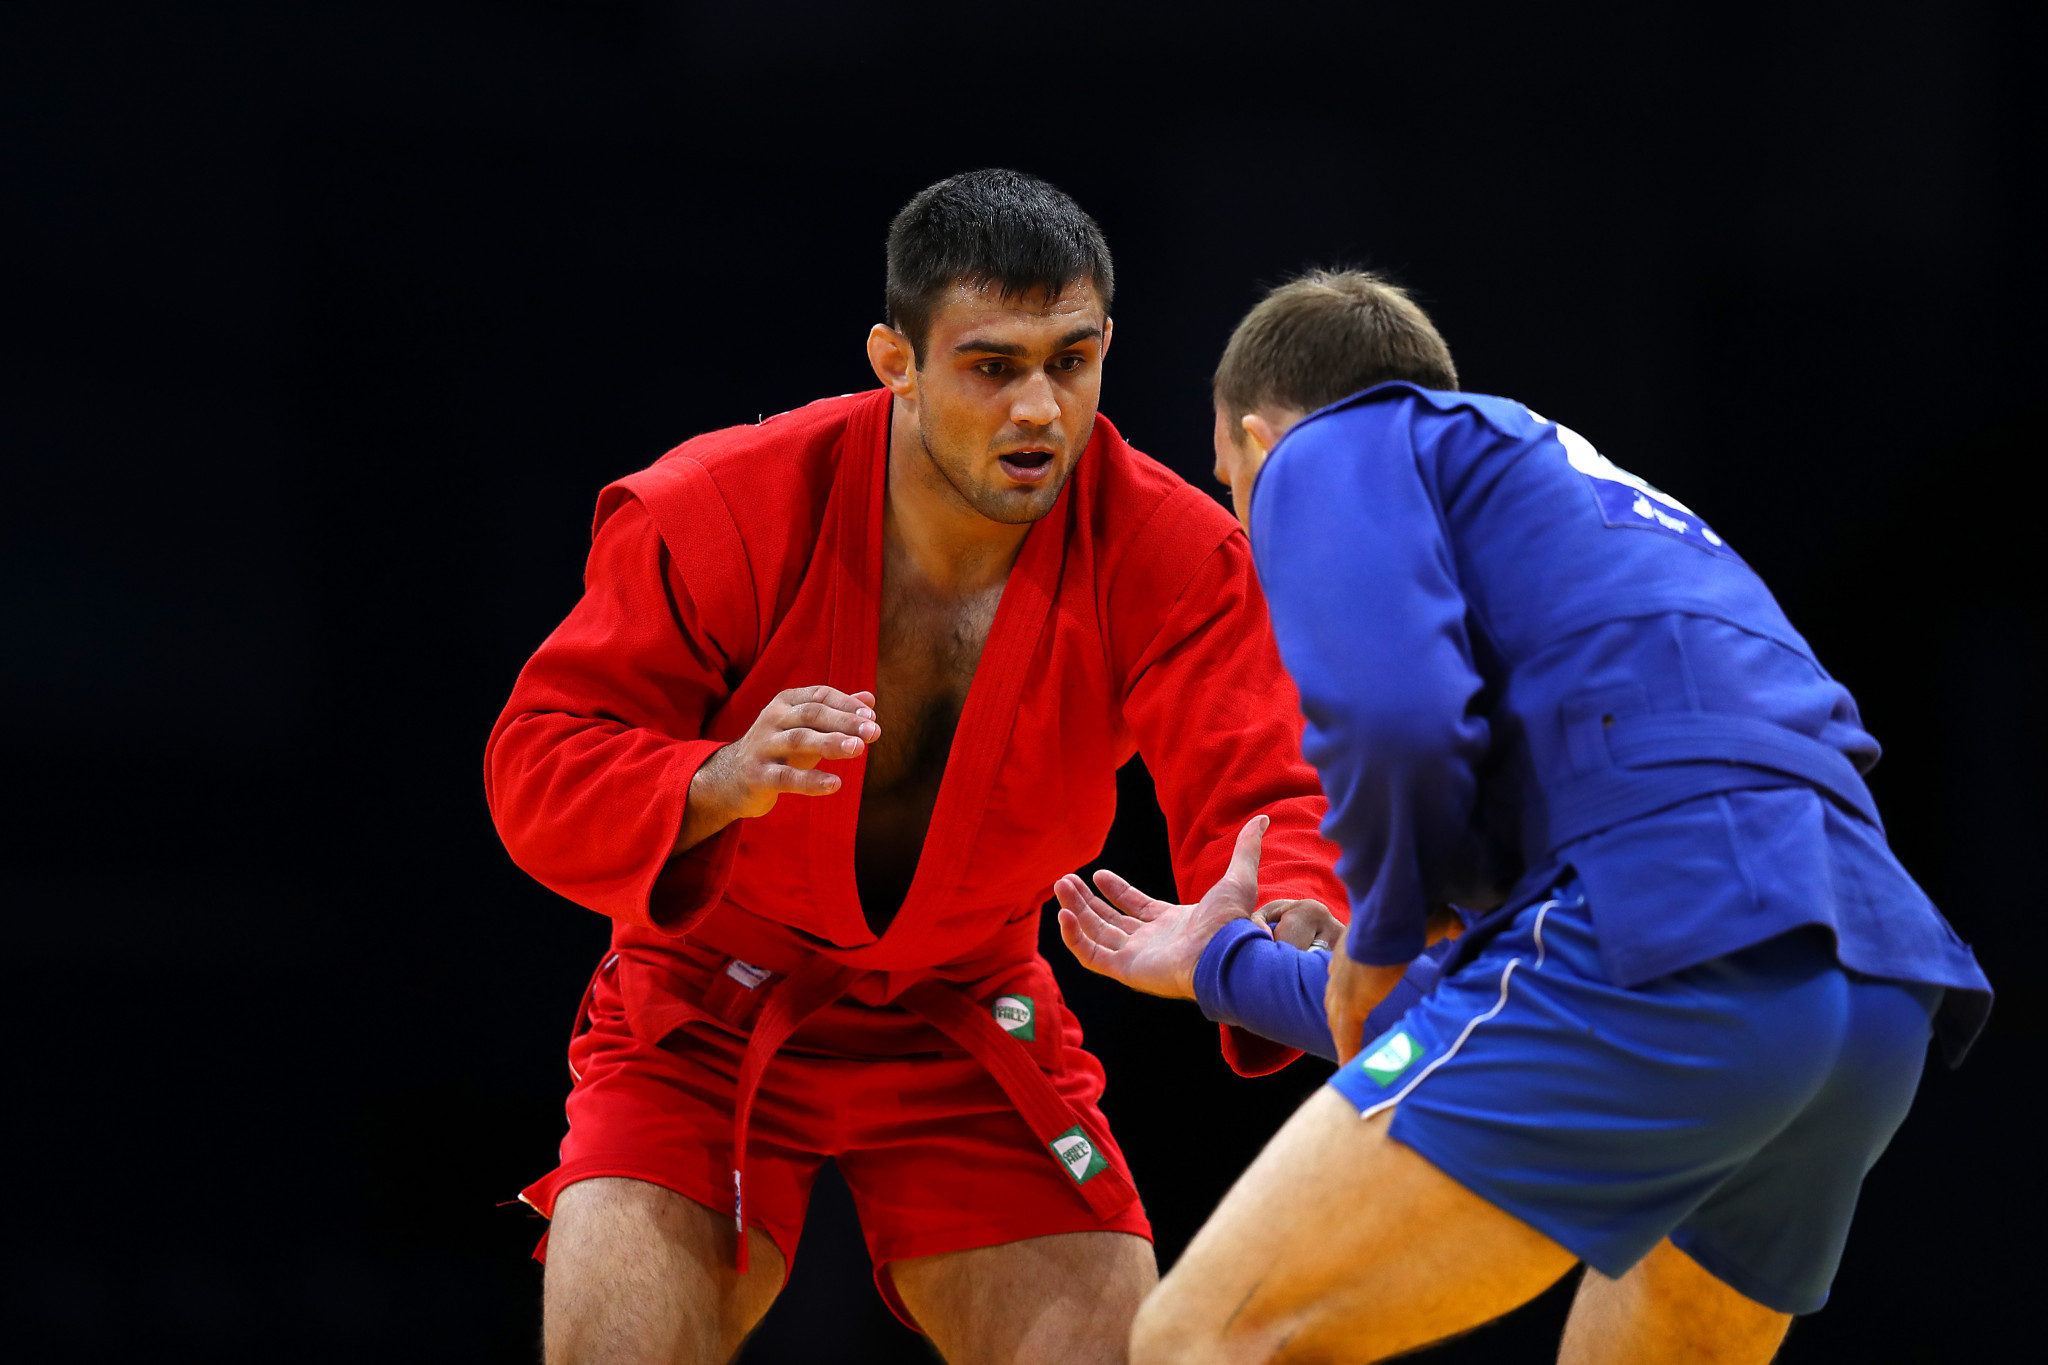 Sambo was granted provisional IOC recognition in 2018 ©Getty Images